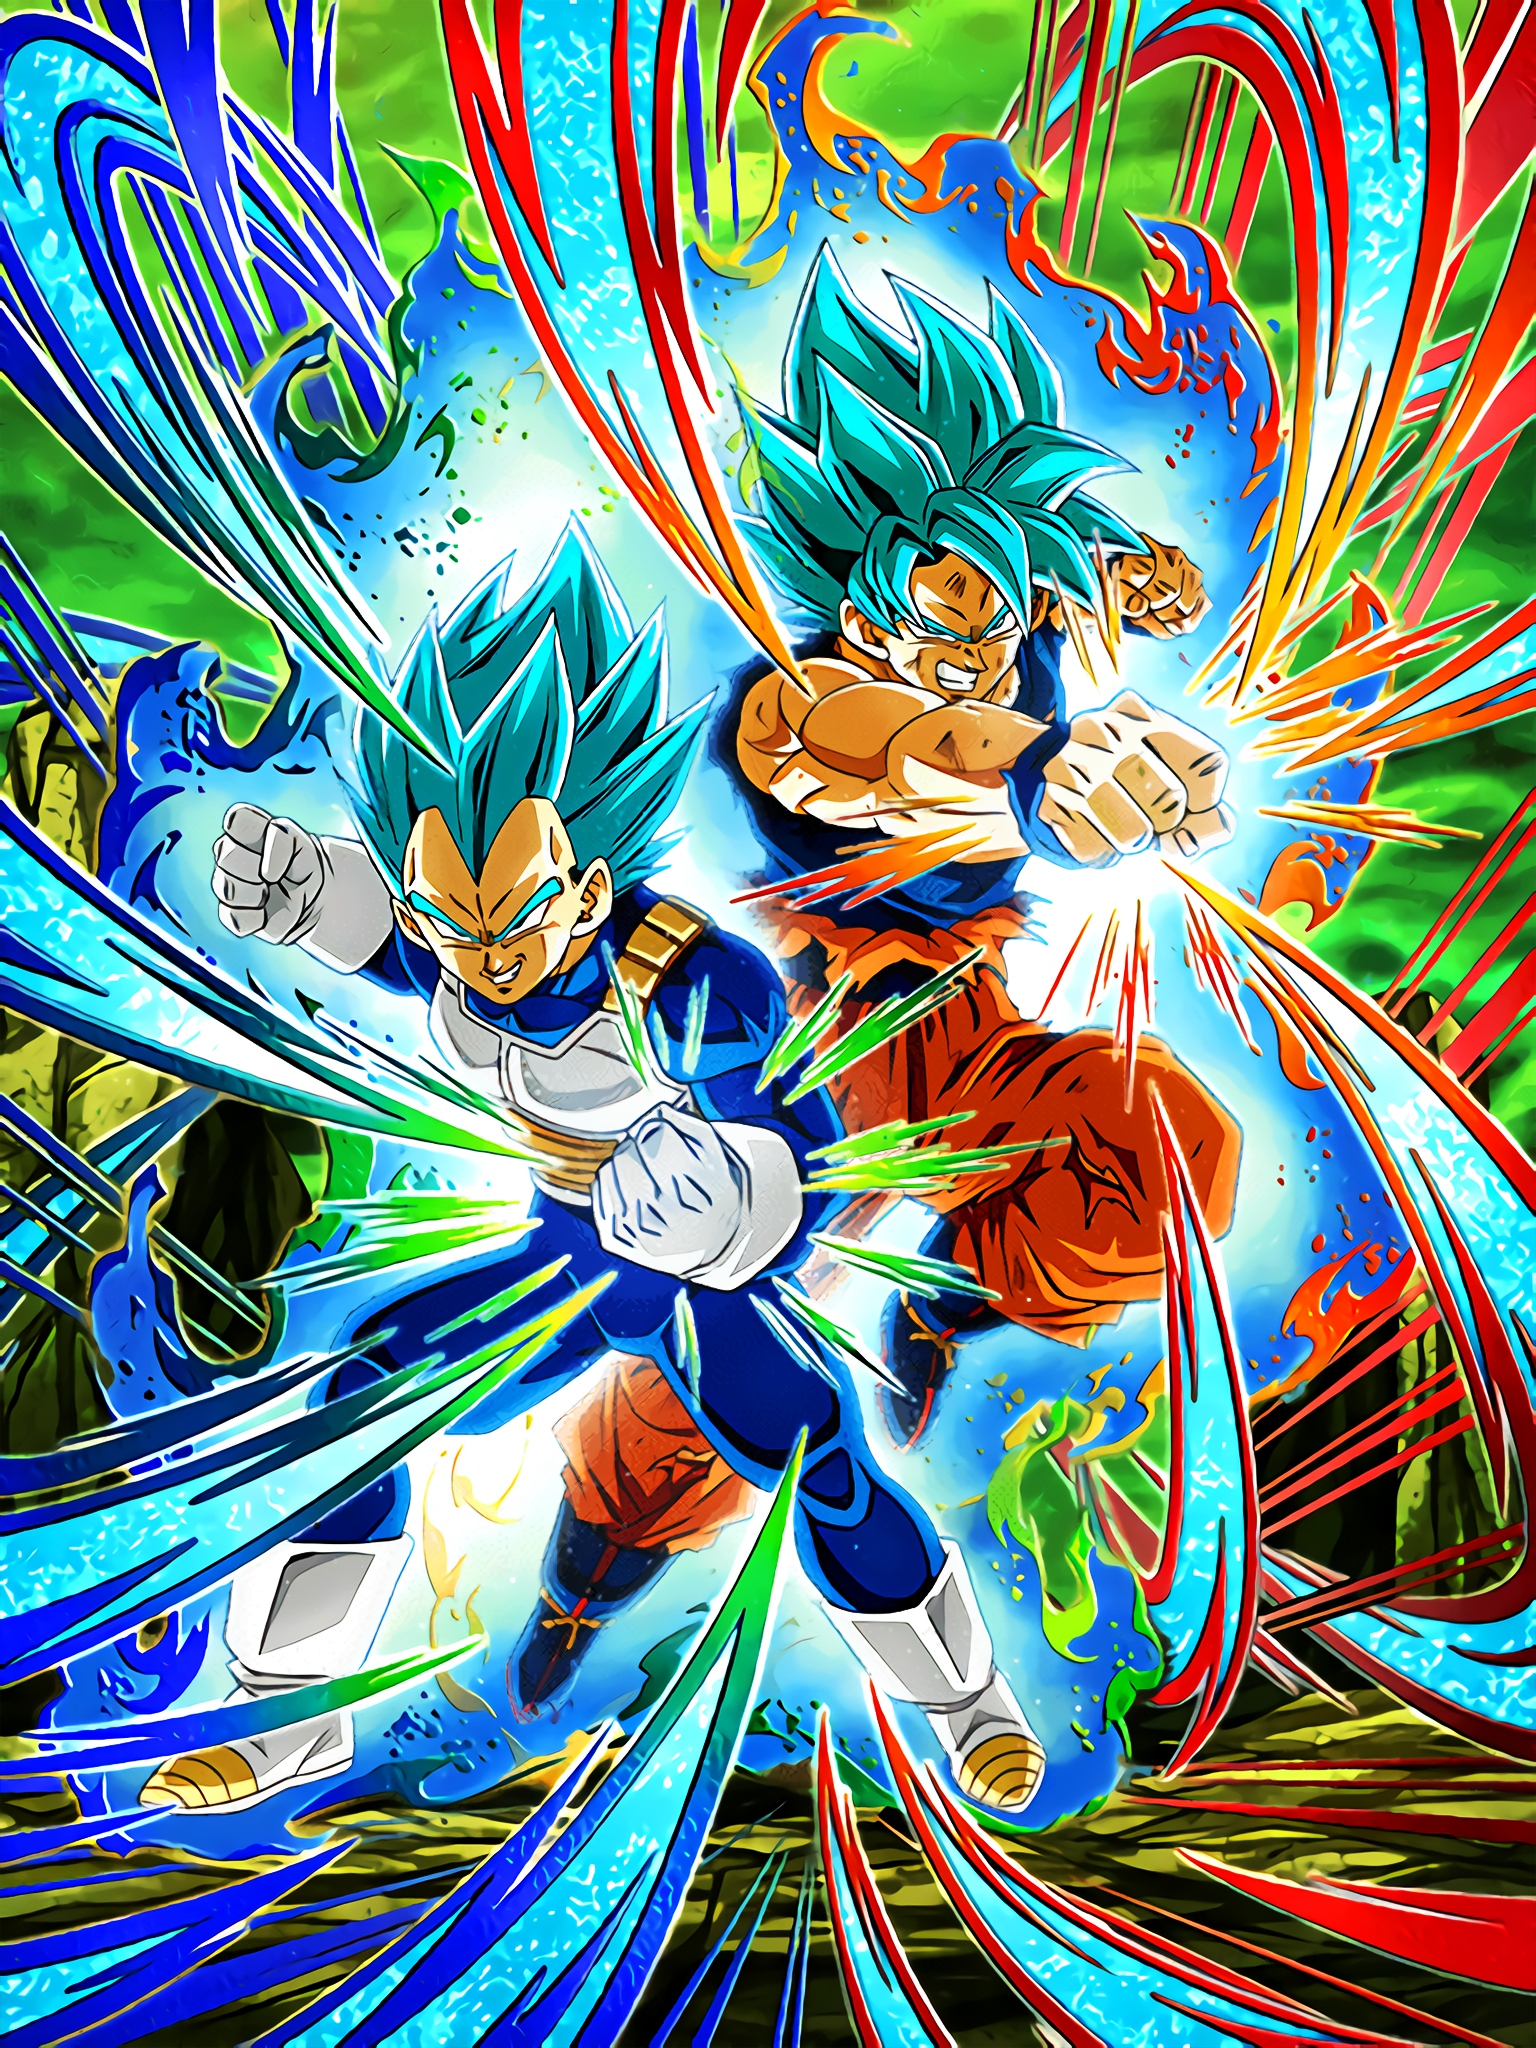 Two Powers Beyong Limits Super Saiyan God SS Goku & Super Saiyan God SS Vegeta Art (Dragon Ball Z Dokkan Battle).jpg